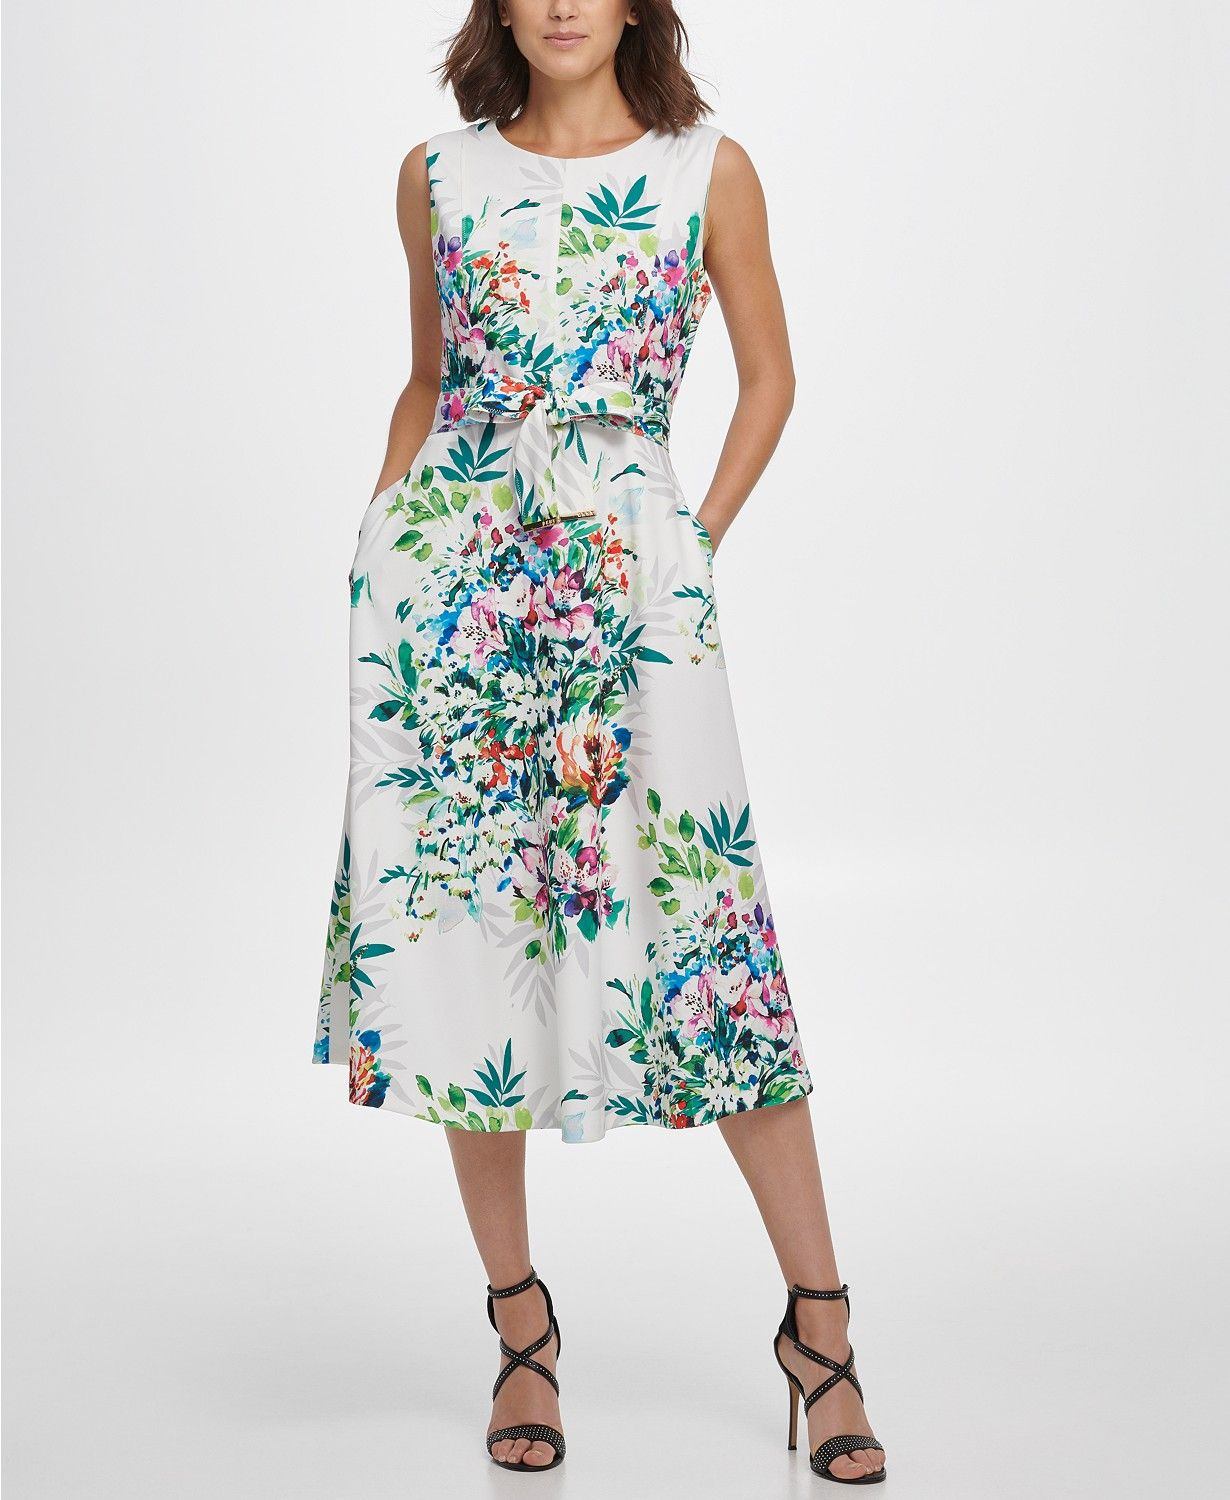 Dkny S L Midi Fit Flare With Self Belt Reviews Dresses Women Macy S Review Dresses Womens Dresses Womens Midi Dresses [ 1500 x 1230 Pixel ]